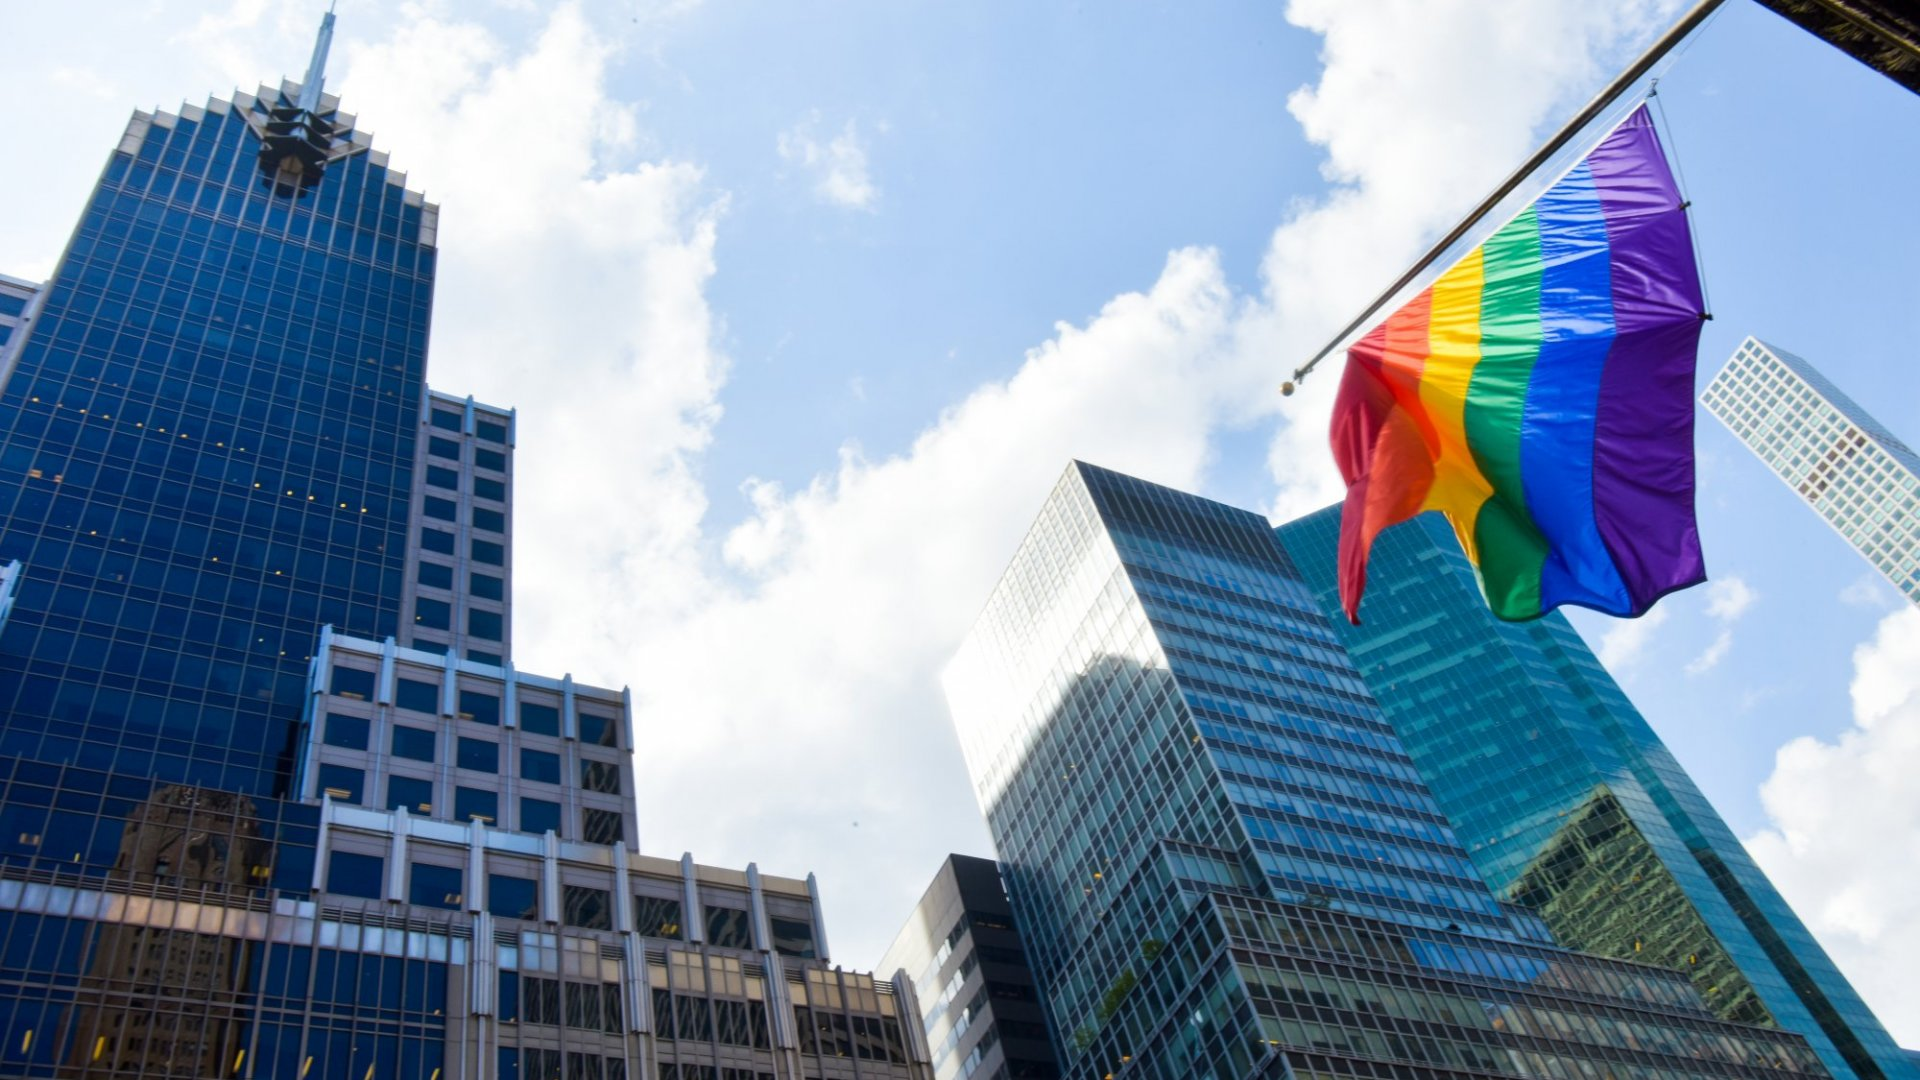 11 Ways Your Office Can Be More LGBTQ Inclusive